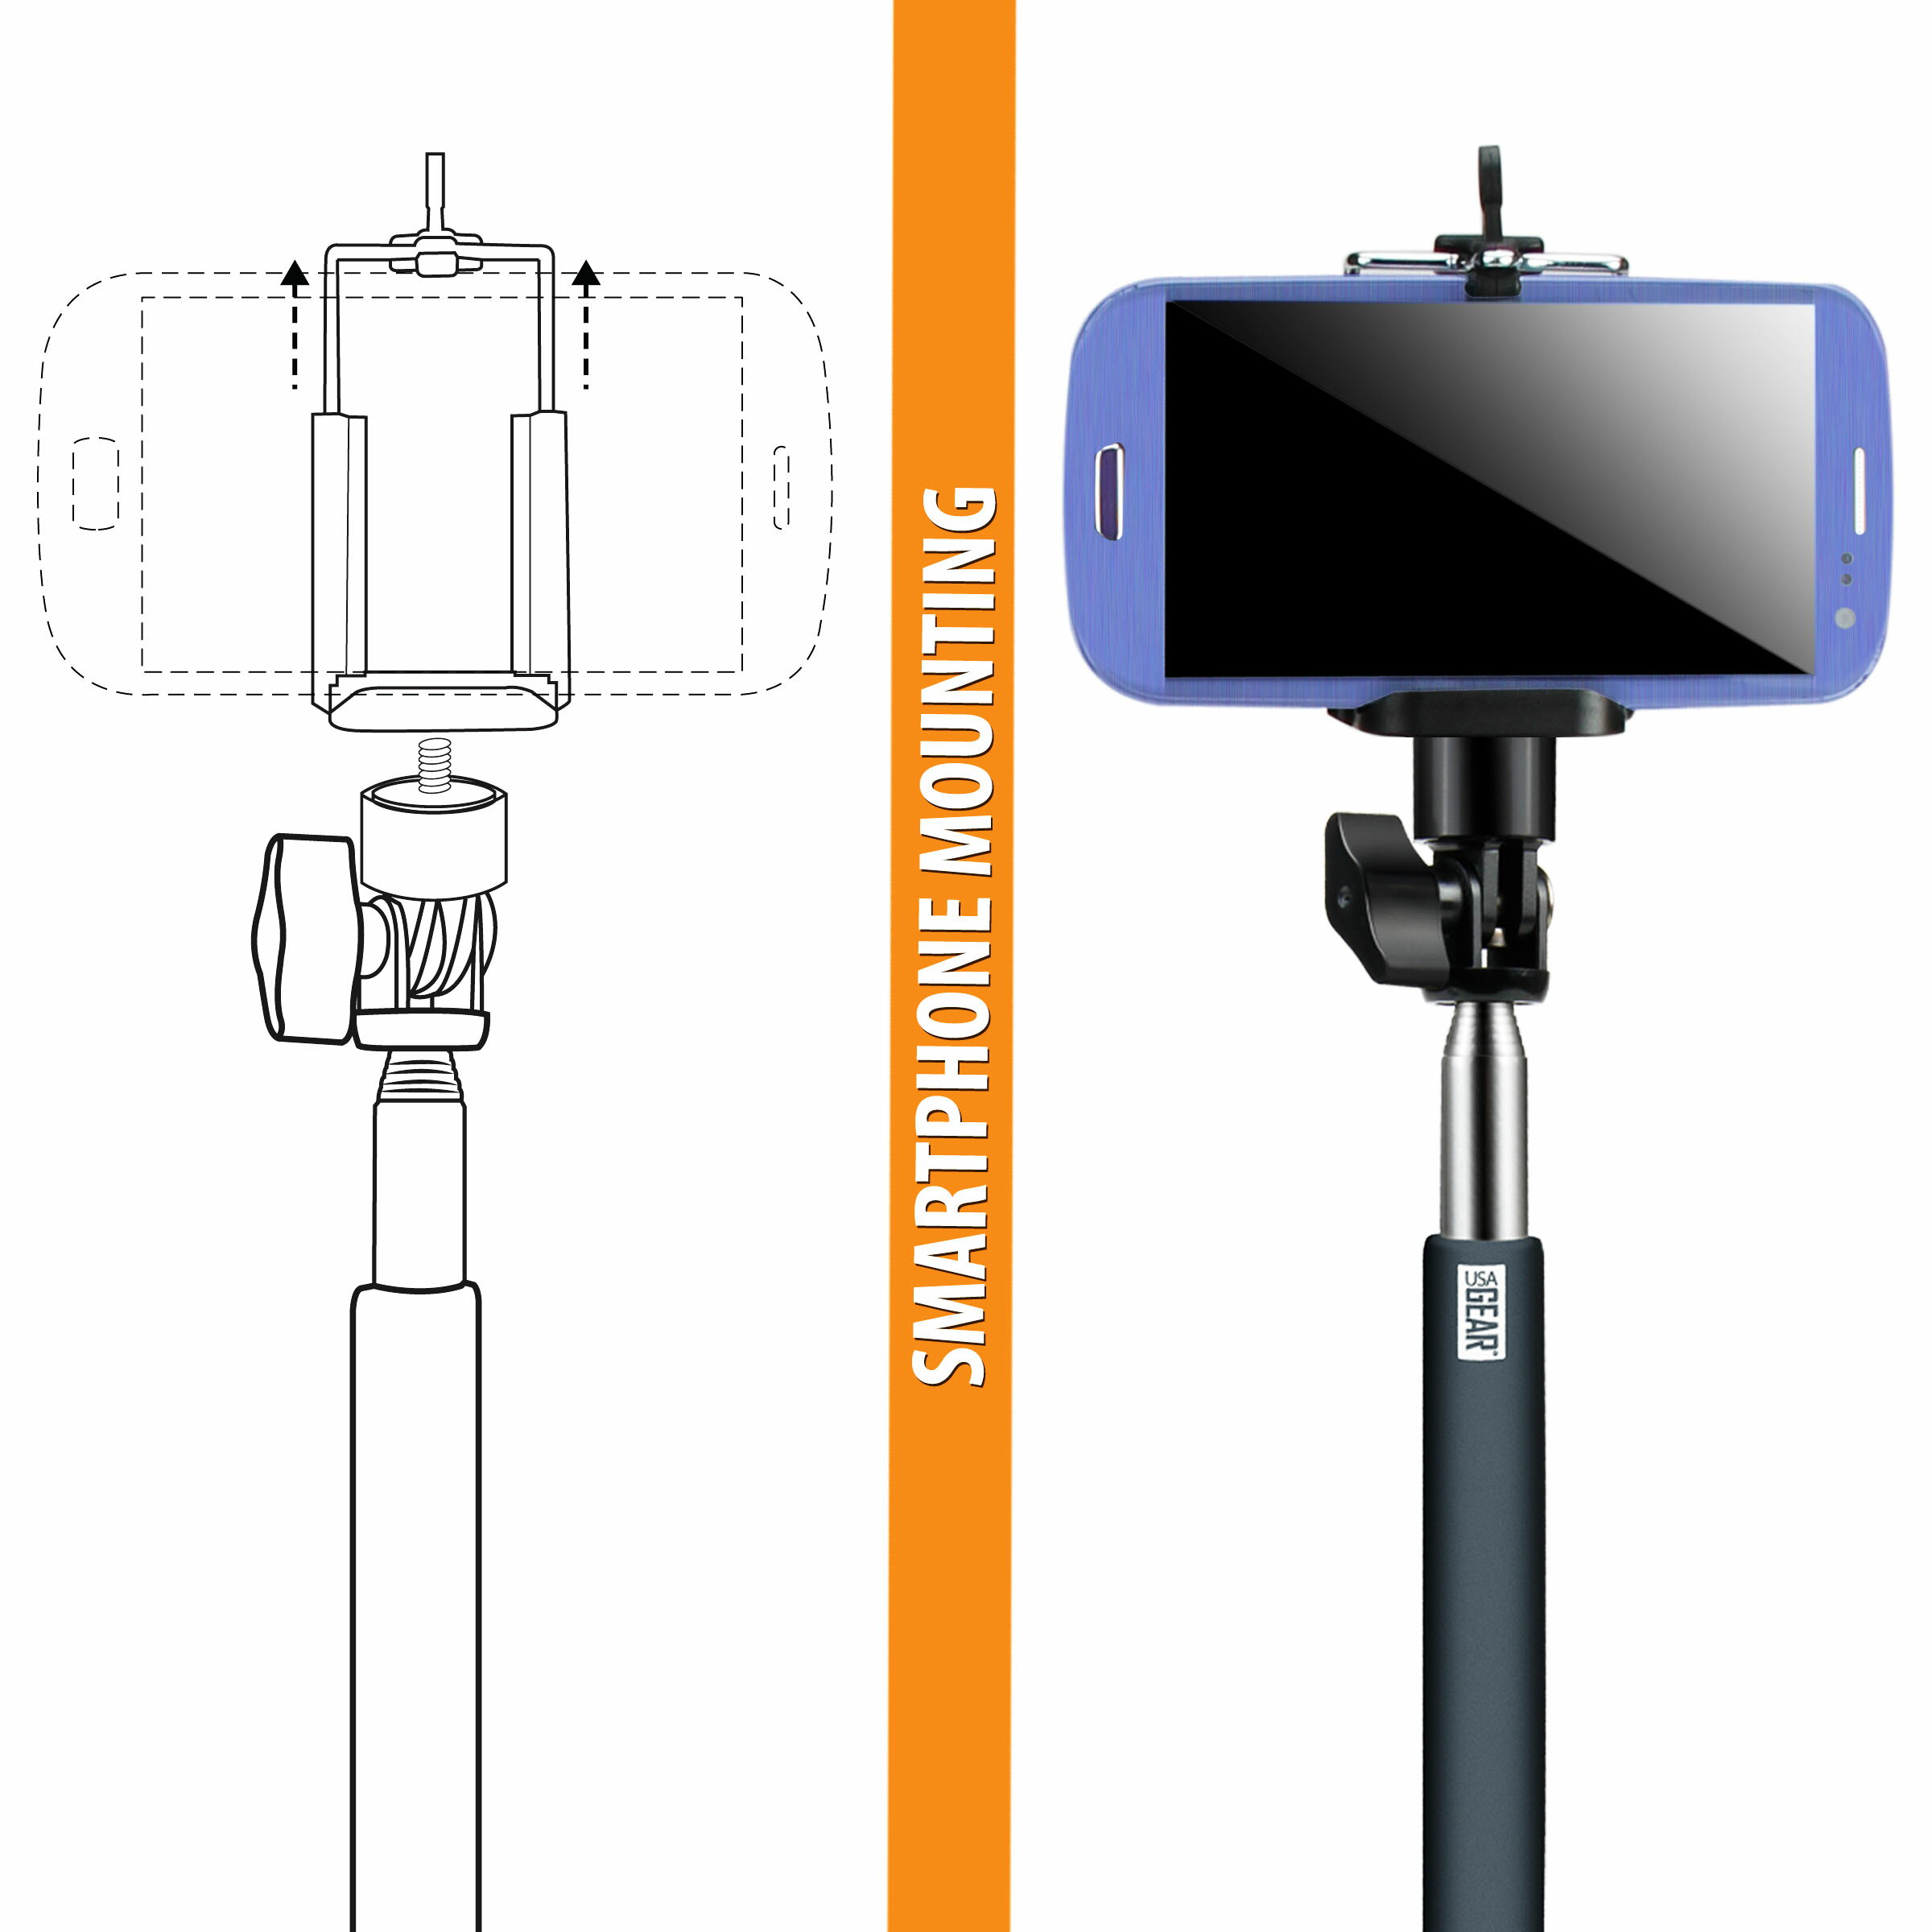 USA Gear Telescopic Monopod with Hand Grip and 180-Degree Swivel Mount for GoPro & More Action Cams 5